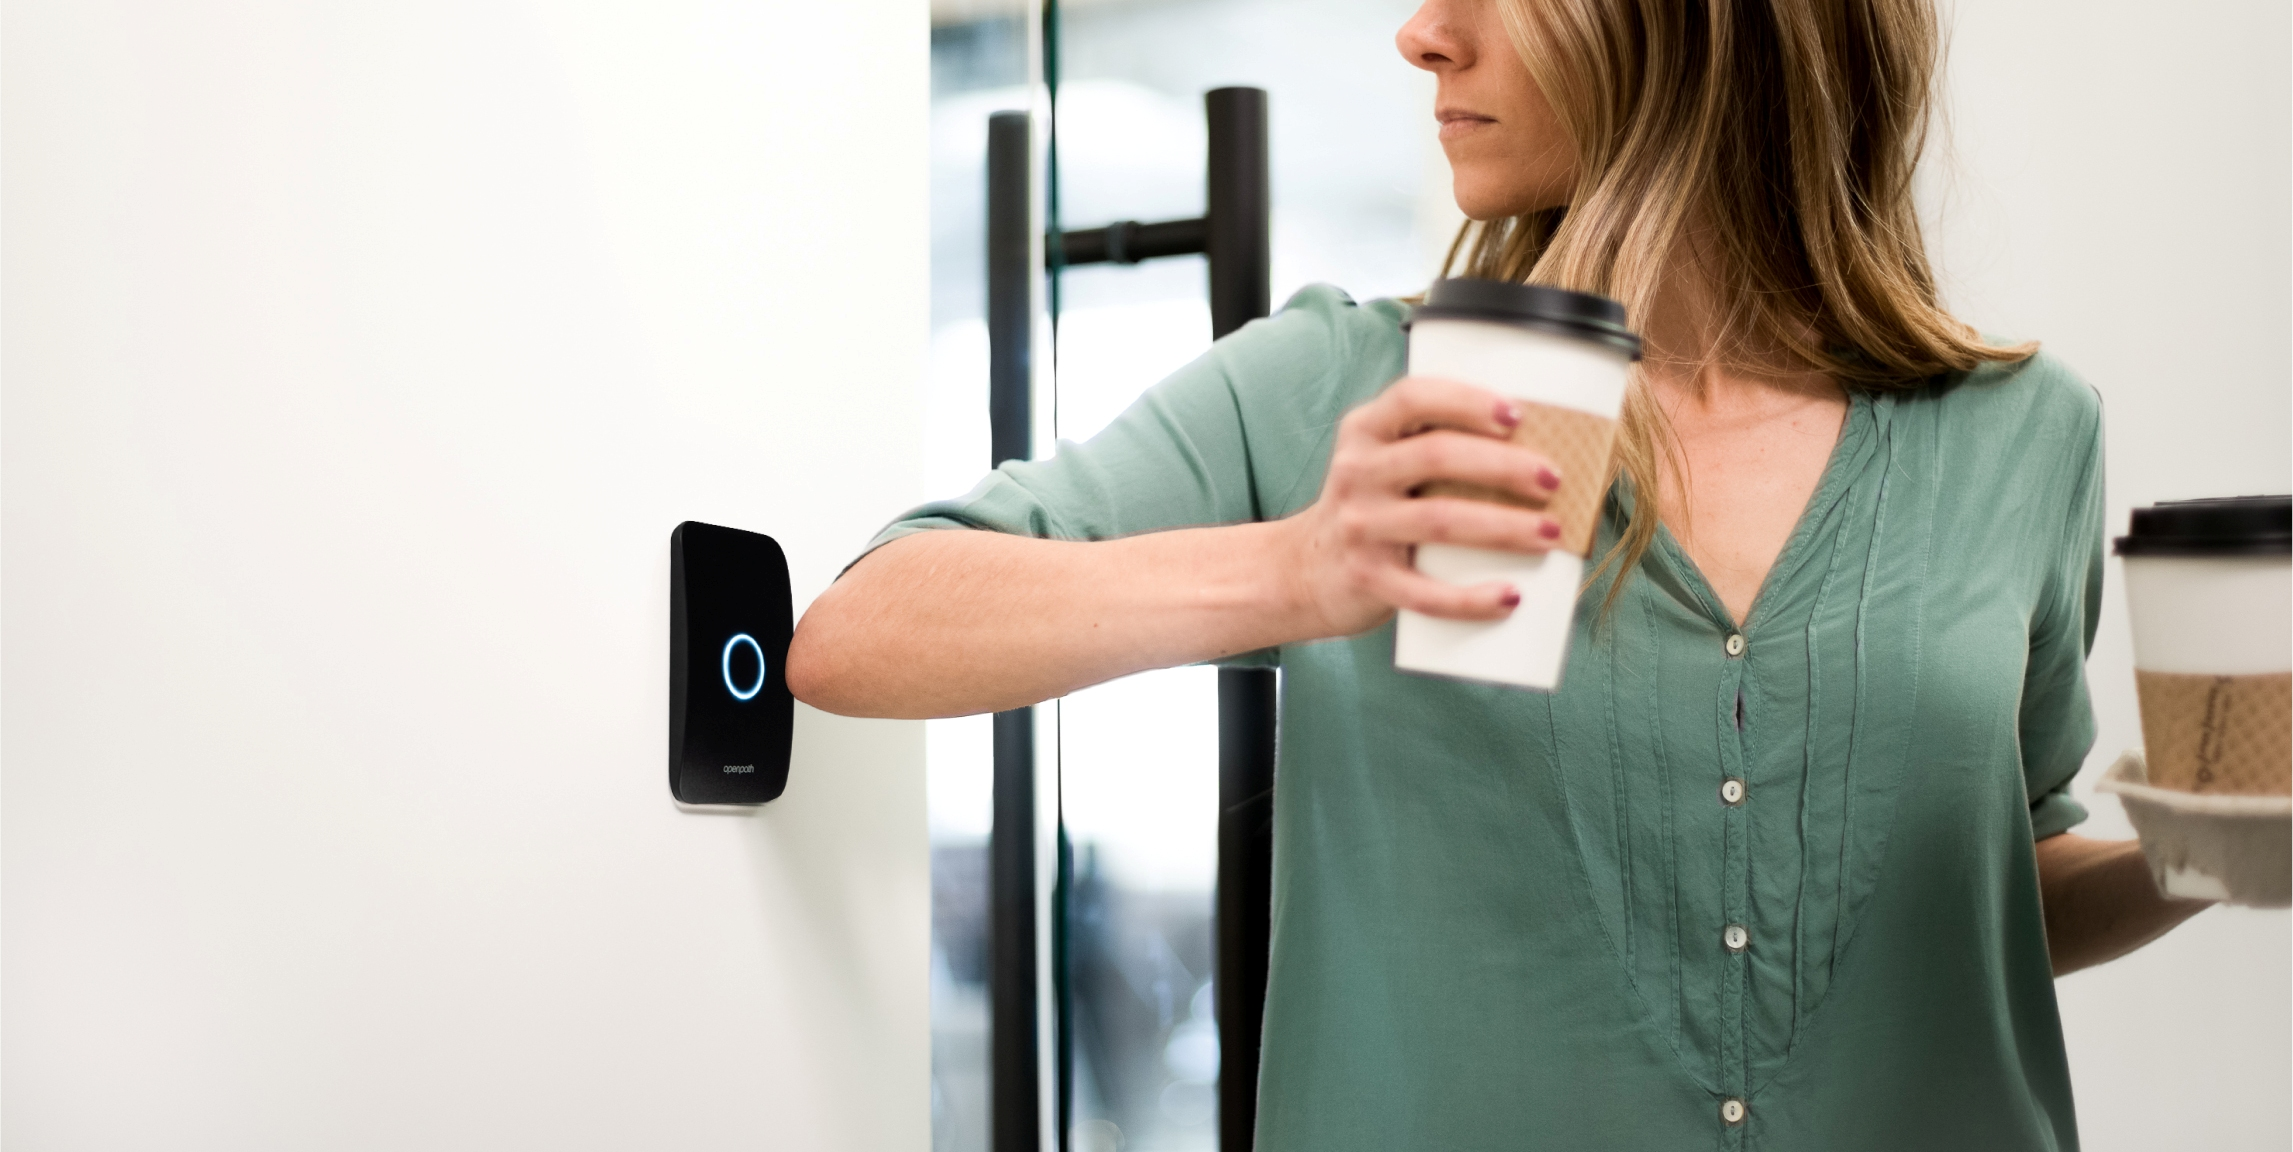 Openpath raises $36 million to bring keyless building access to more  industries | VentureBeat